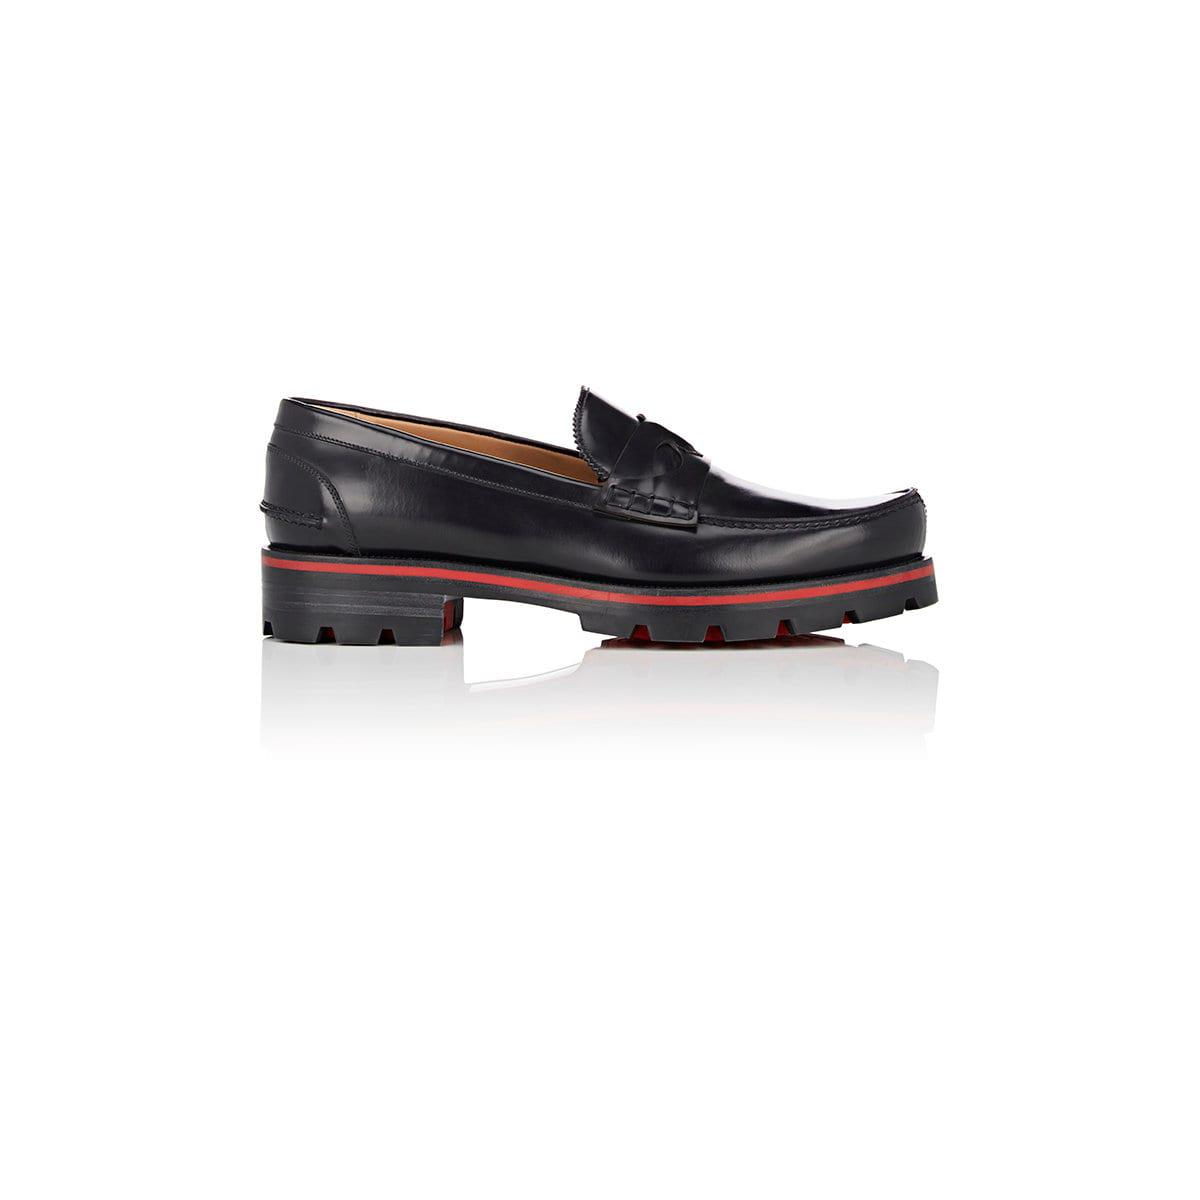 32e0f023074 Christian Louboutin Black Habsbour Tibour Flat Spazzolato Leather Penny  Loafers for men